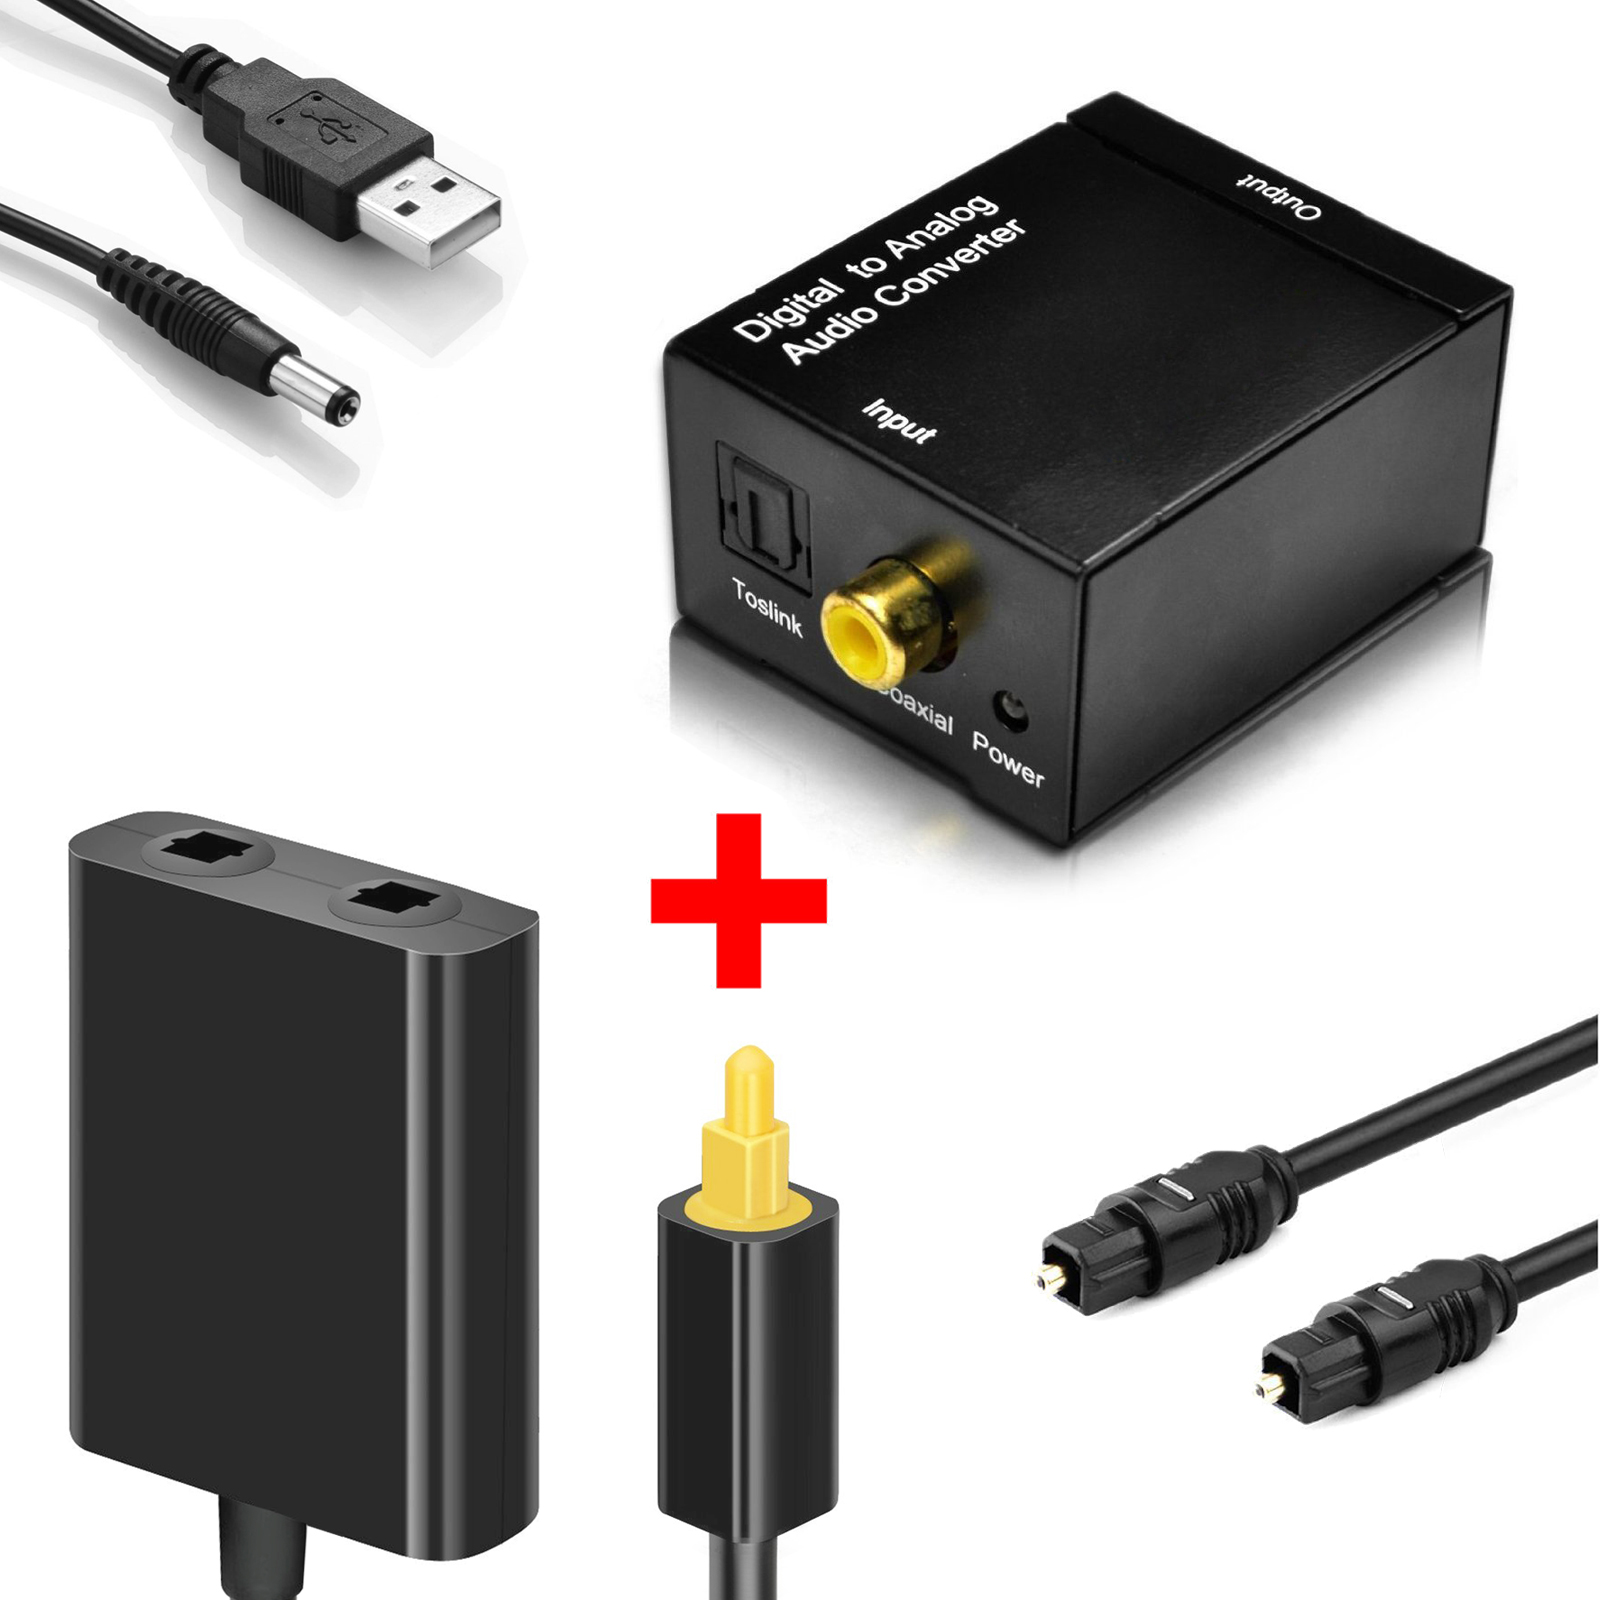 EEEKit Toslink Digital Optical Fiber Optic Splitter 1 in 2 Out Audio Adapter and Digital Coax to Analog RCA Audio Conver